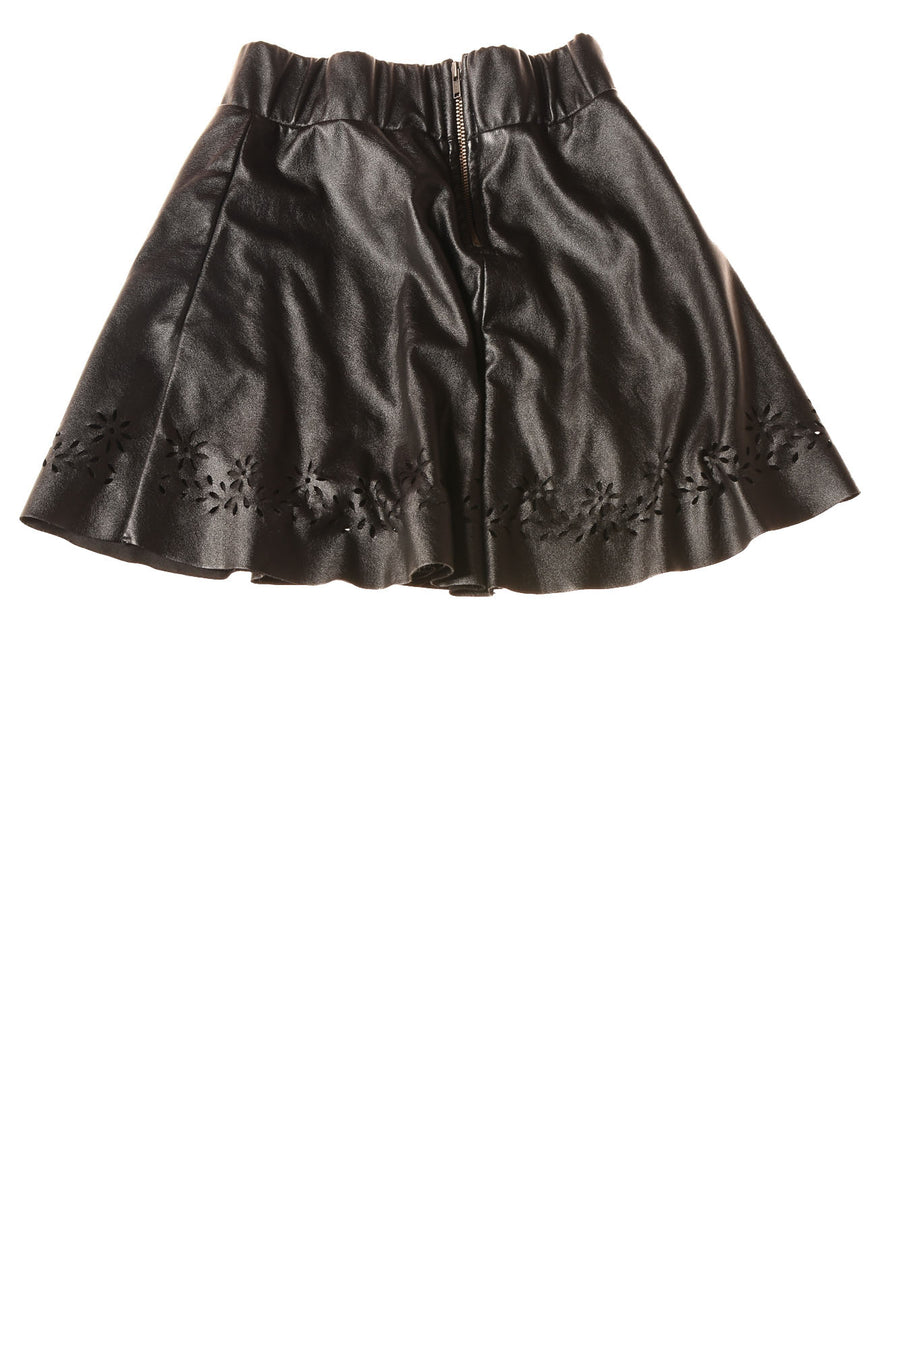 USED Ruby & Bloom Girl's Skirt 7/8 Black